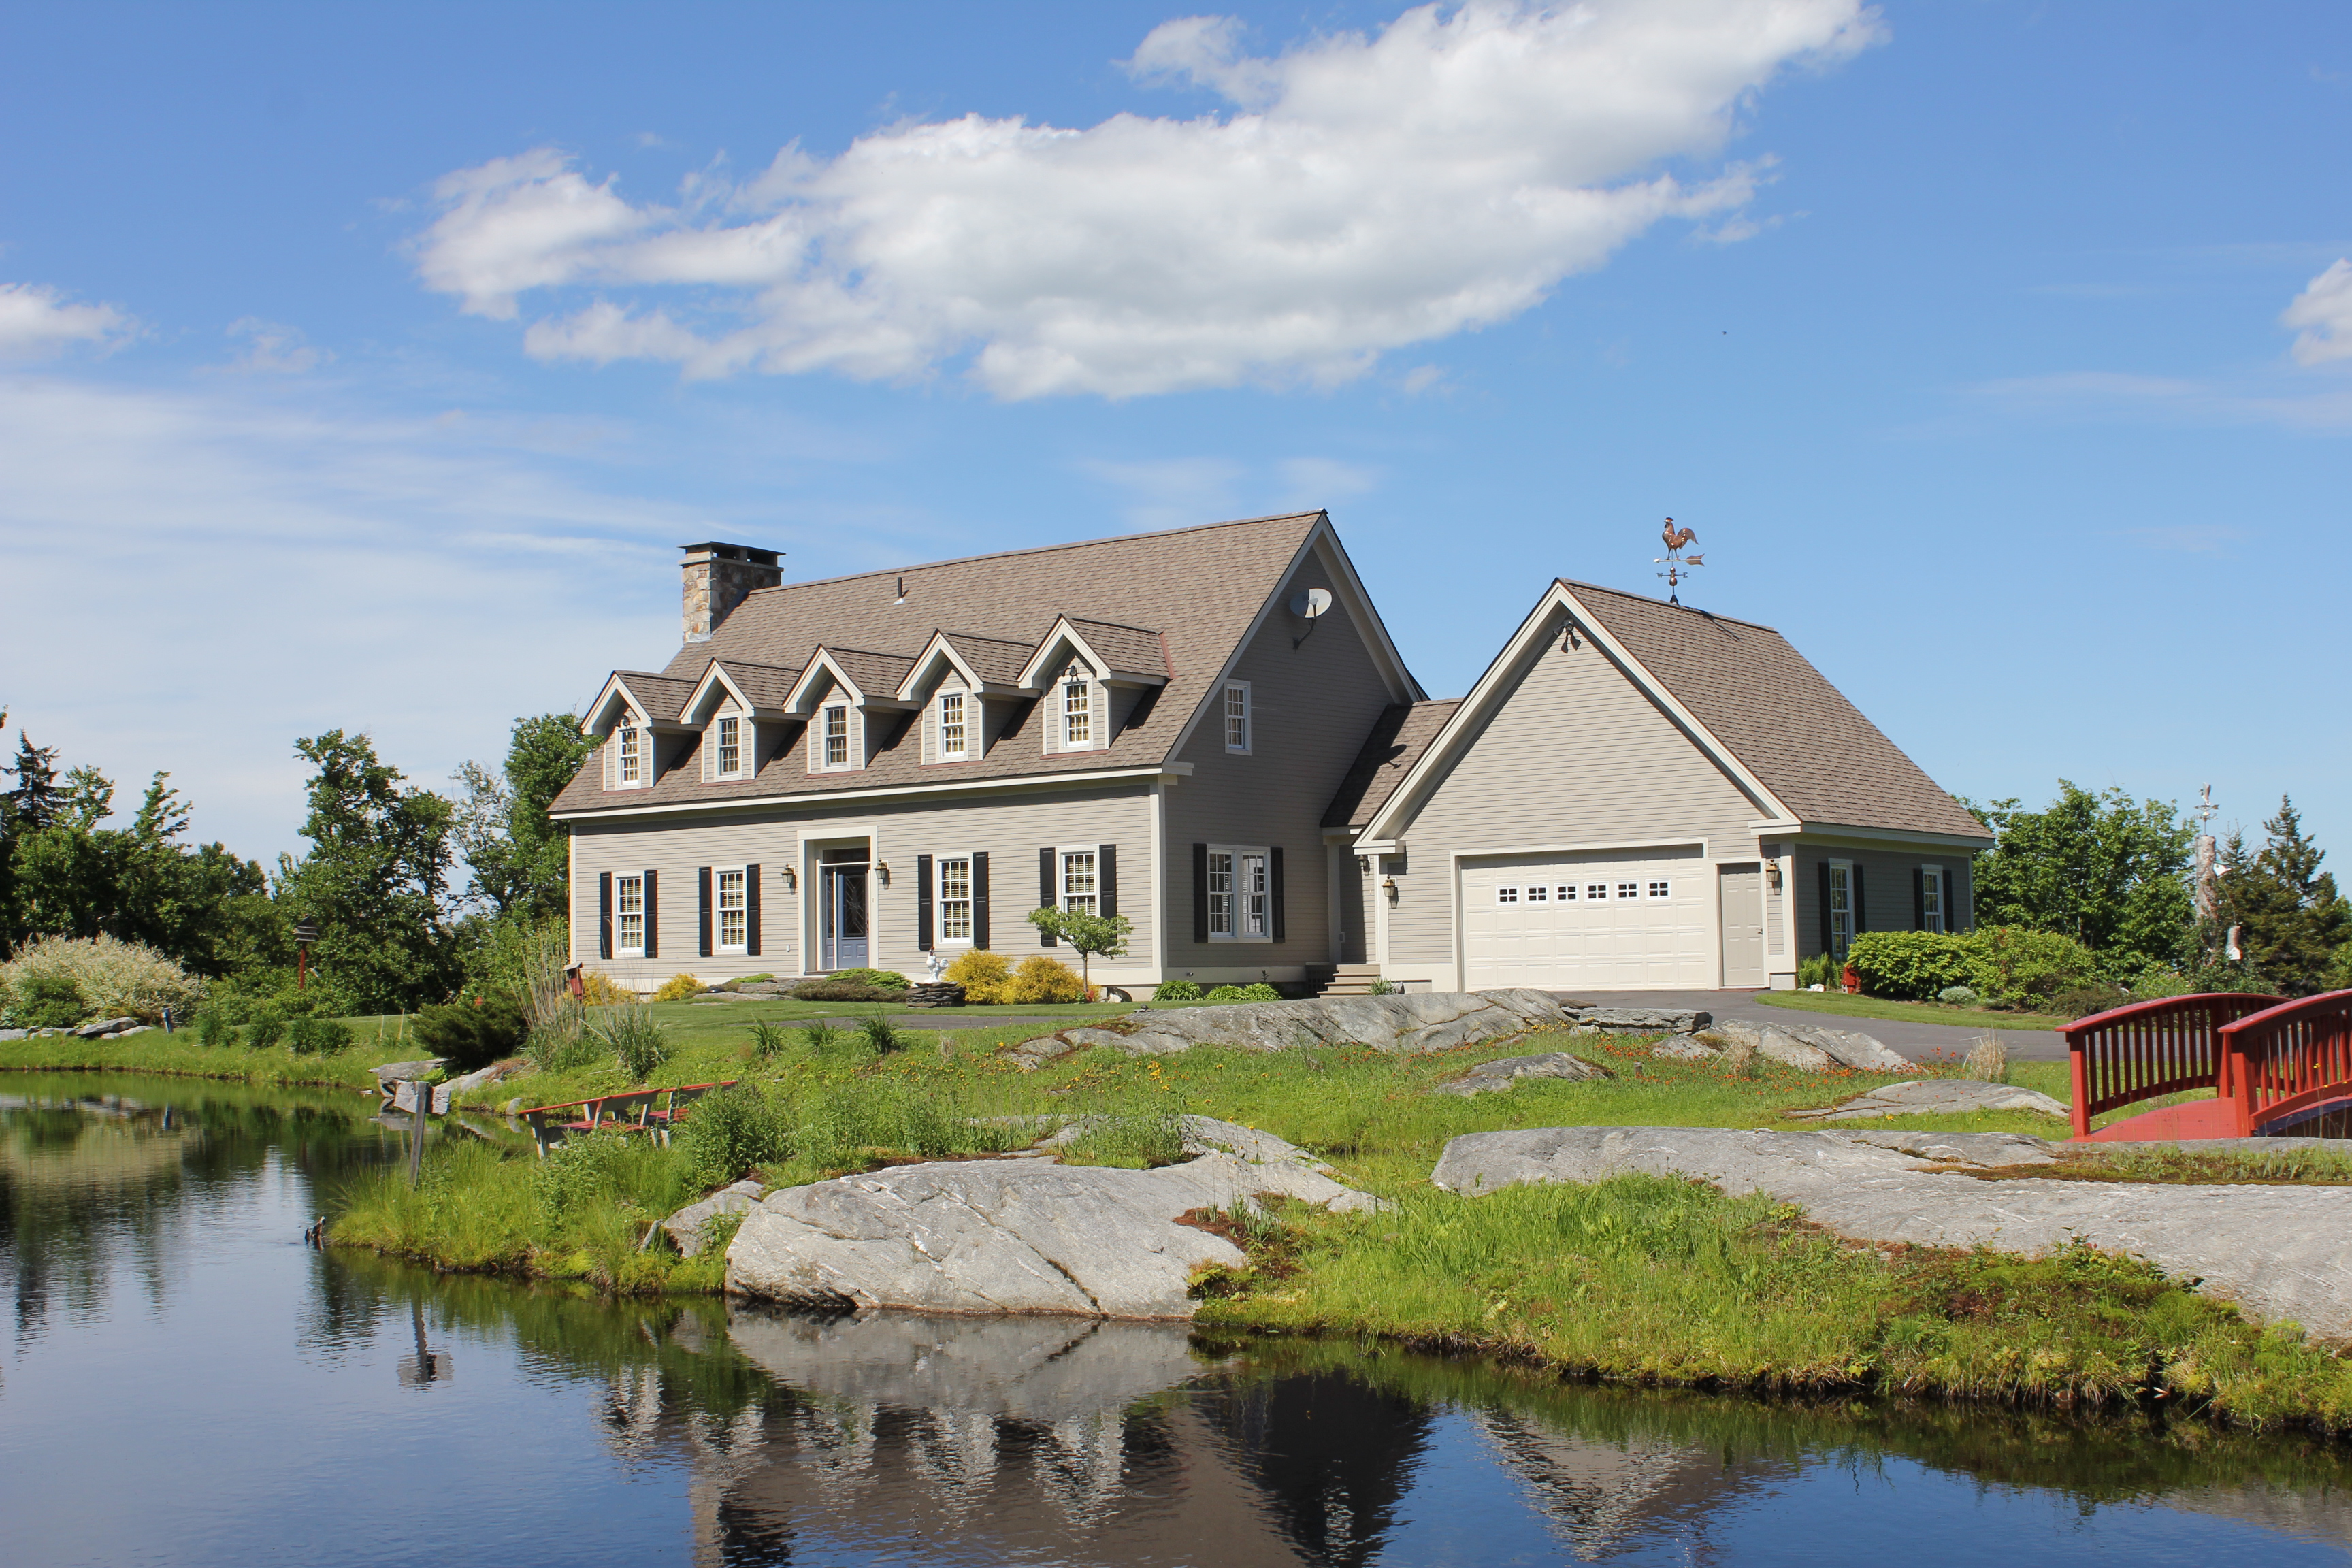 Single Family Home for Sale at Vast View with Private Pond 695 Route 100 Stratton, Vermont, 05360 United States